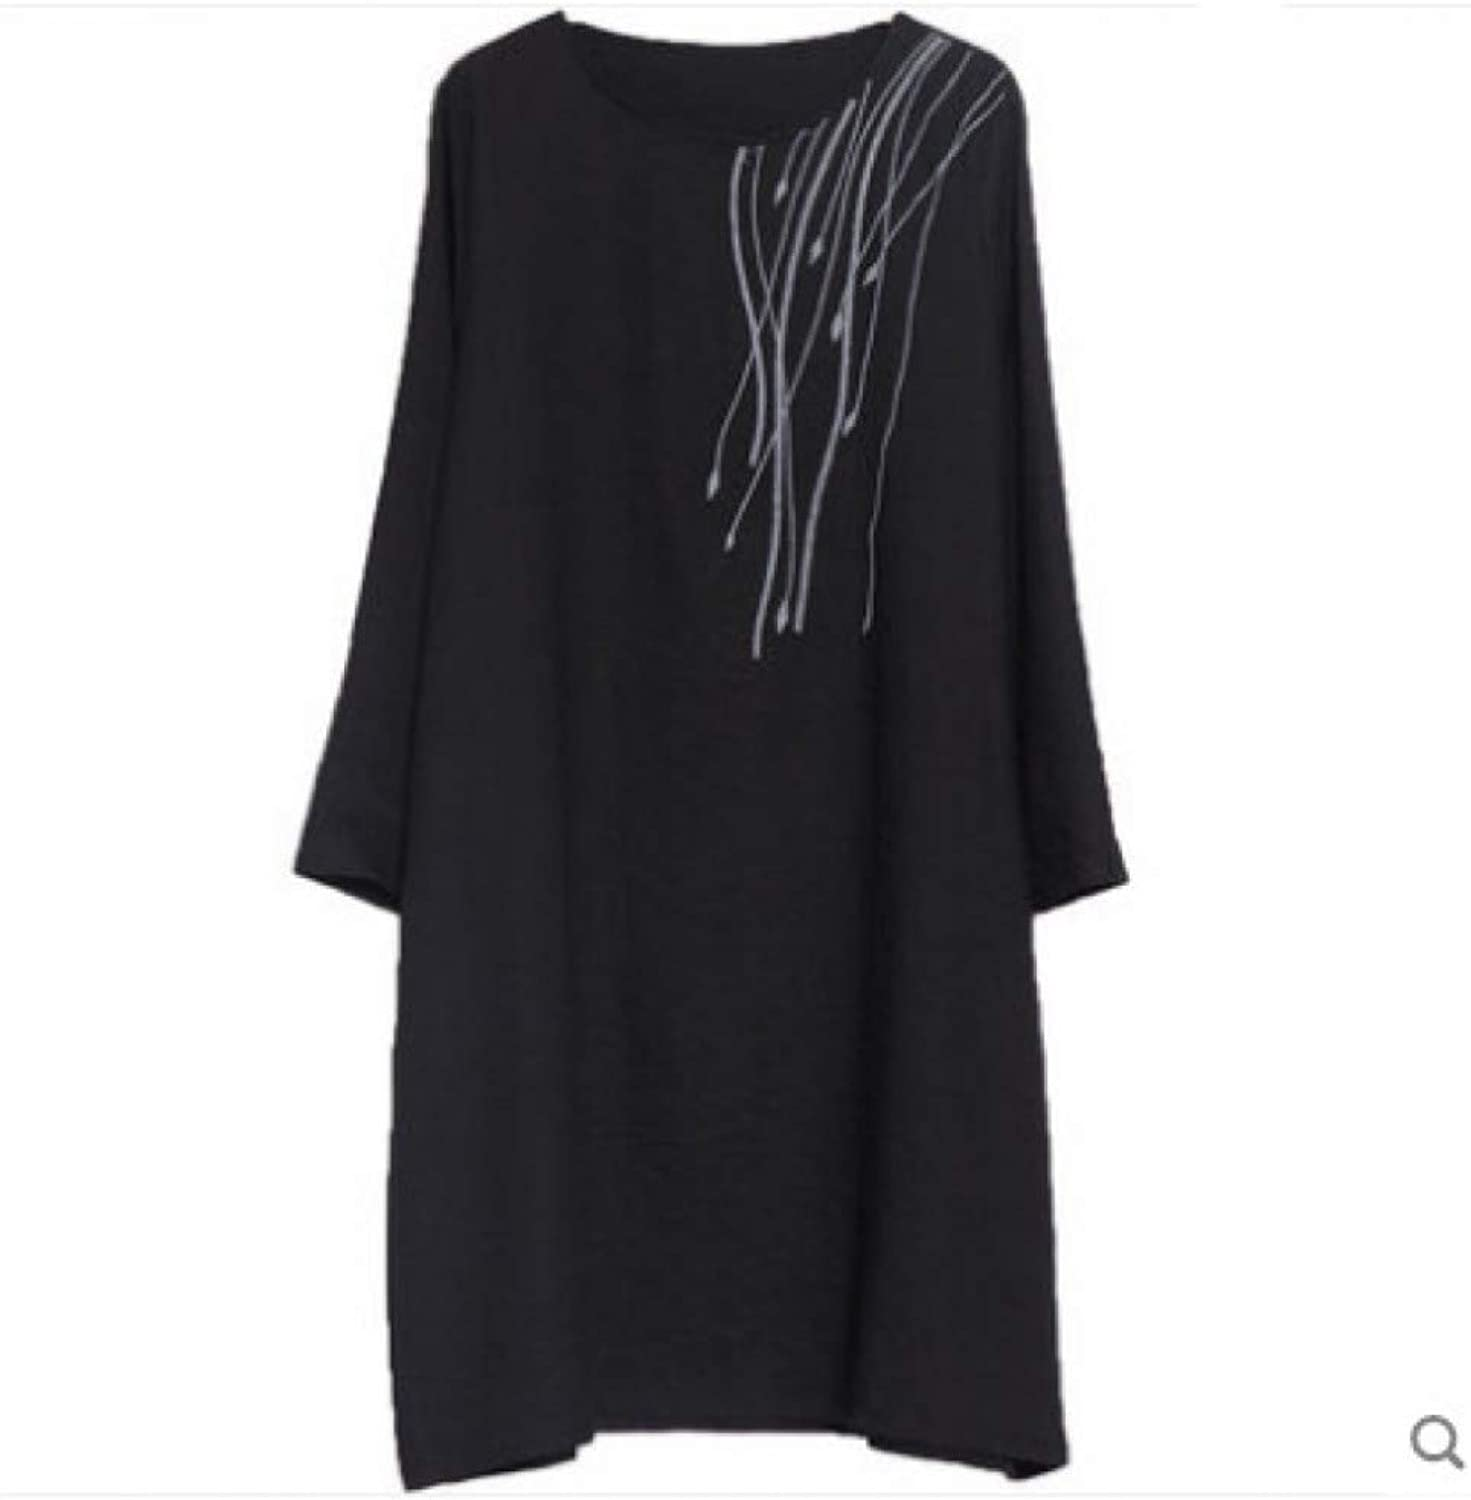 Cxlyq Dresses Large Size A Word Cotton and Linen Embroidered Women's Long Section Long Sleeve Dress